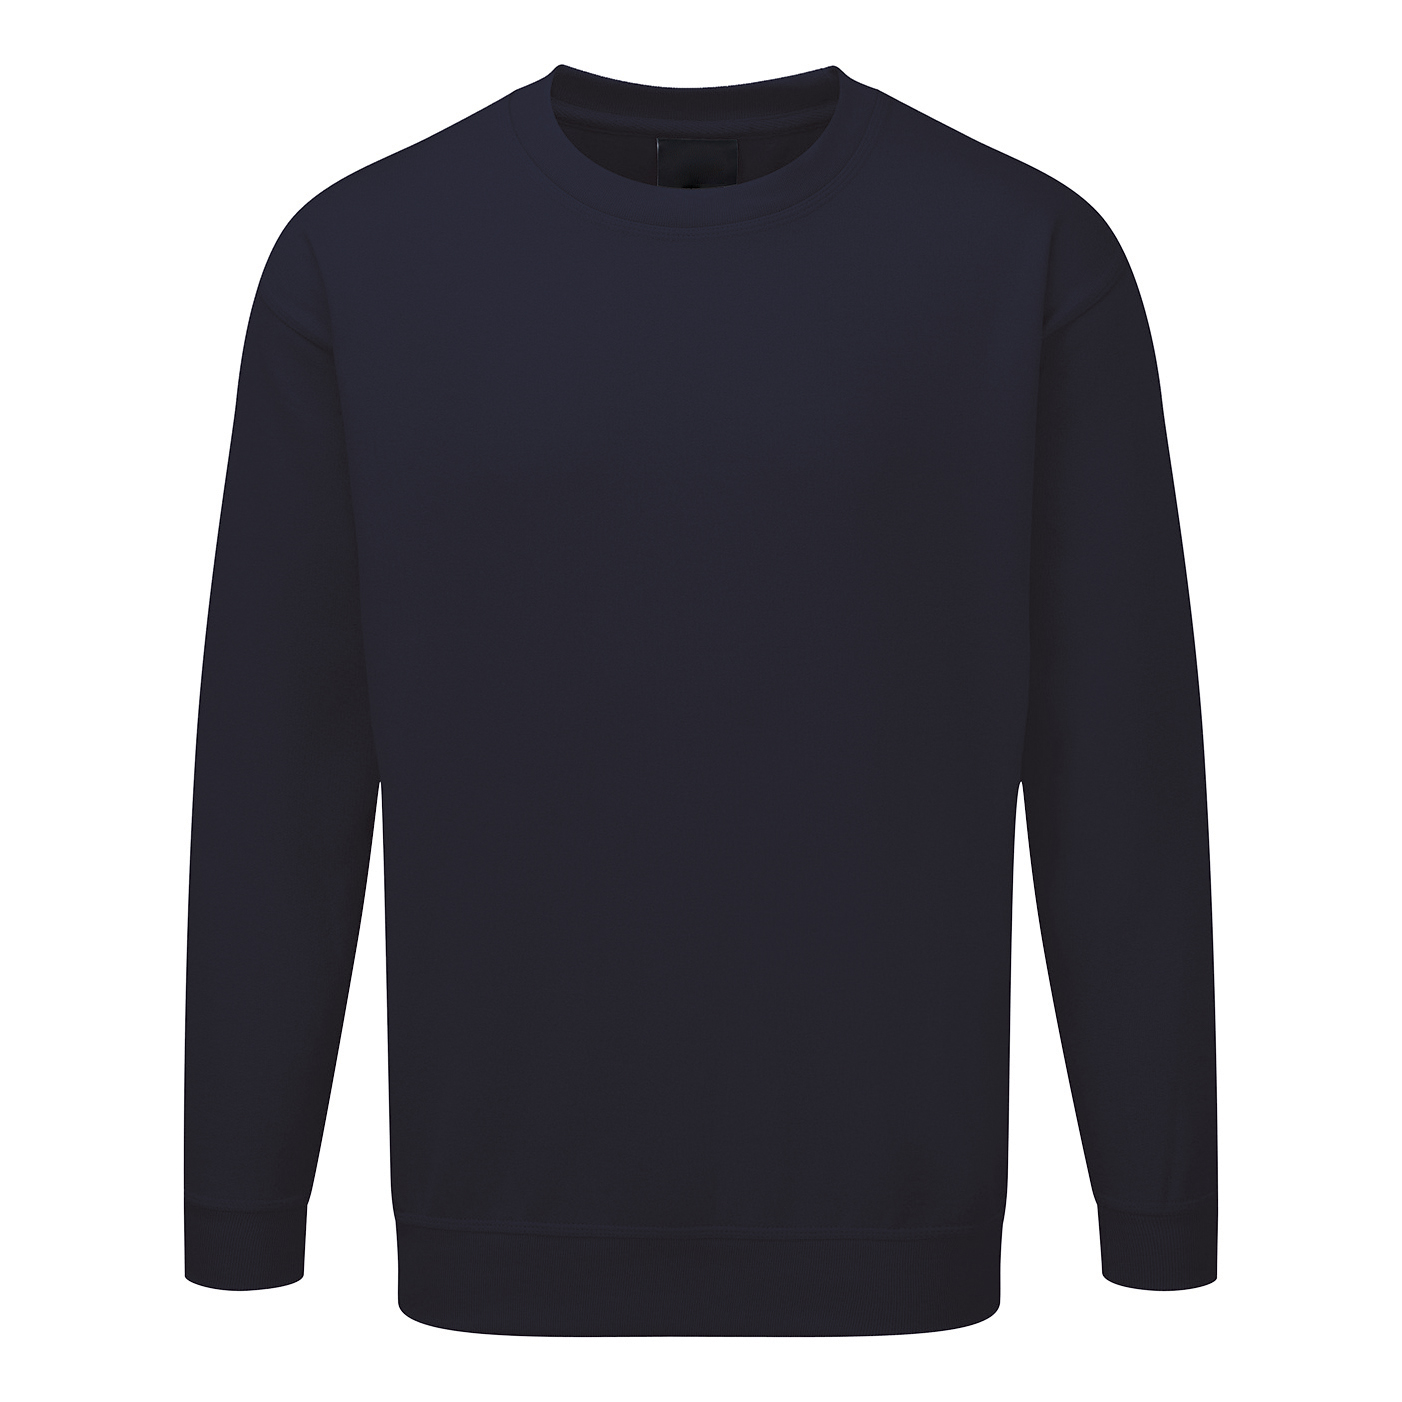 Sweatshirts / Jumpers / Hoodies Click Workwear Sweatshirt Polycotton 300gsm XL Navy Blue Ref CLPCSNXL *1-3 Days Lead Time*